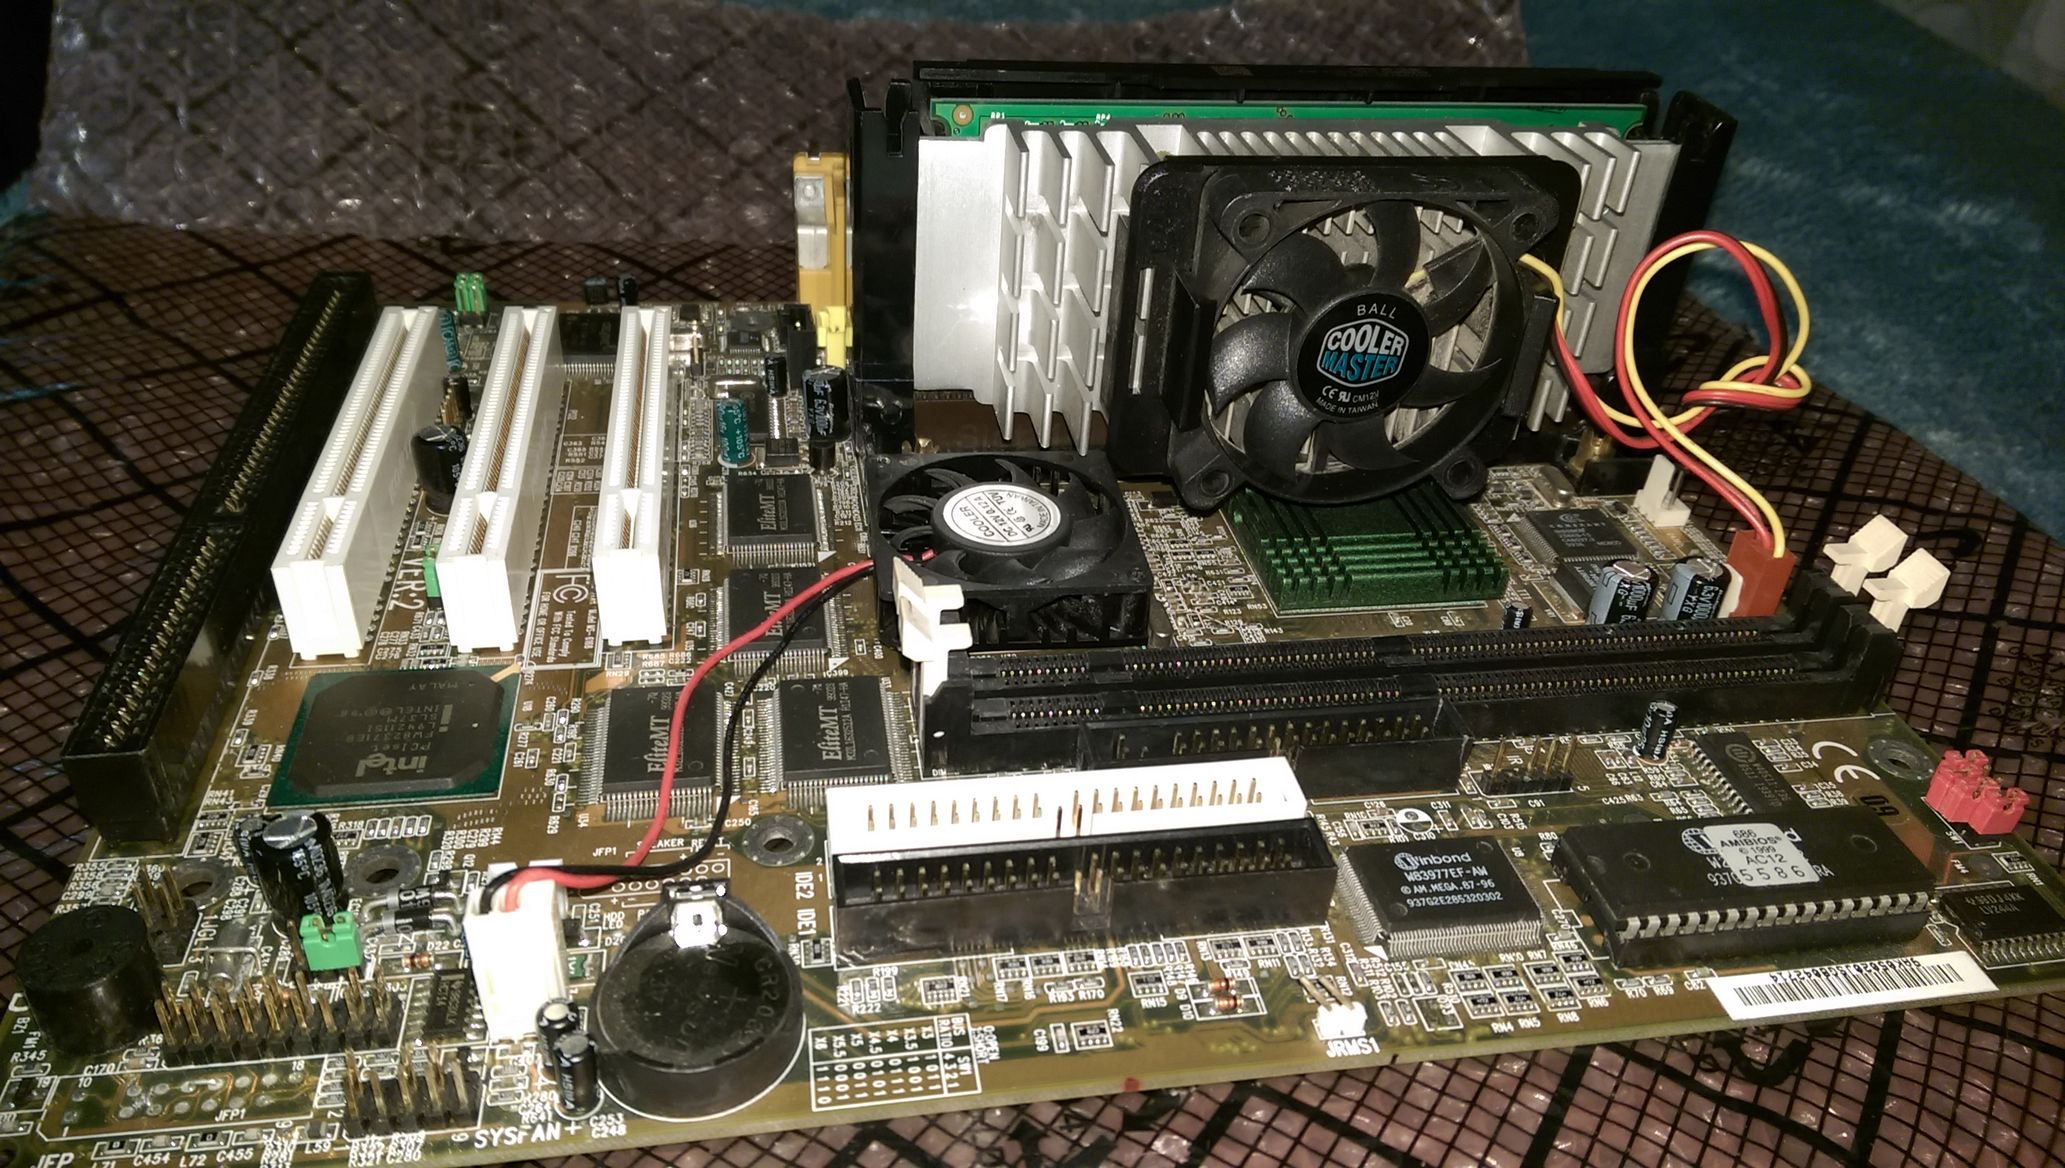 Aopen i945gm pilf motherboard manual - AOpen Computers & Internet